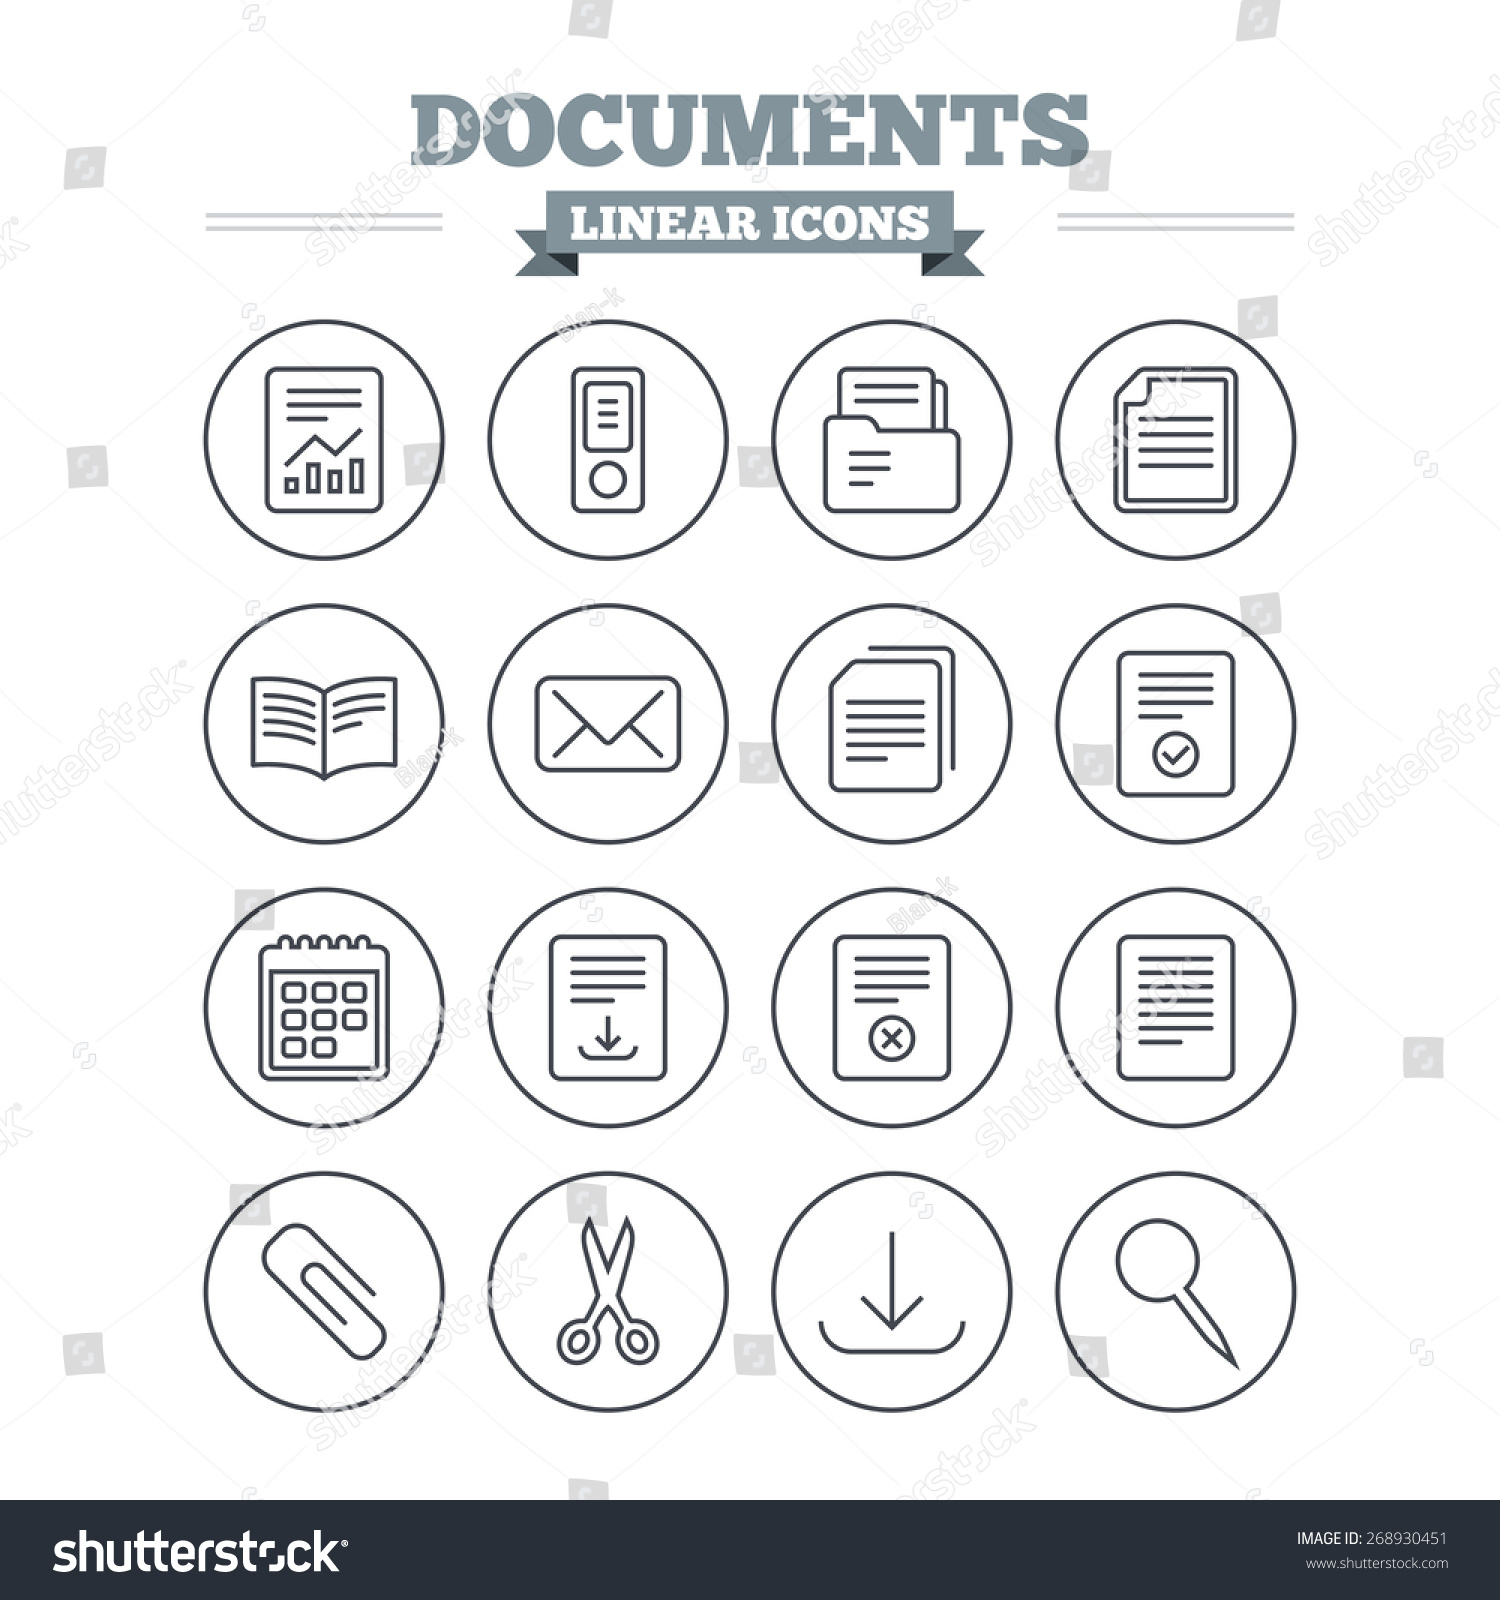 Documents Linear Icons Set Accounting Book Stock Vector Hd Royalty Rh Shutterstock Com Symbols Clip Art Ledger